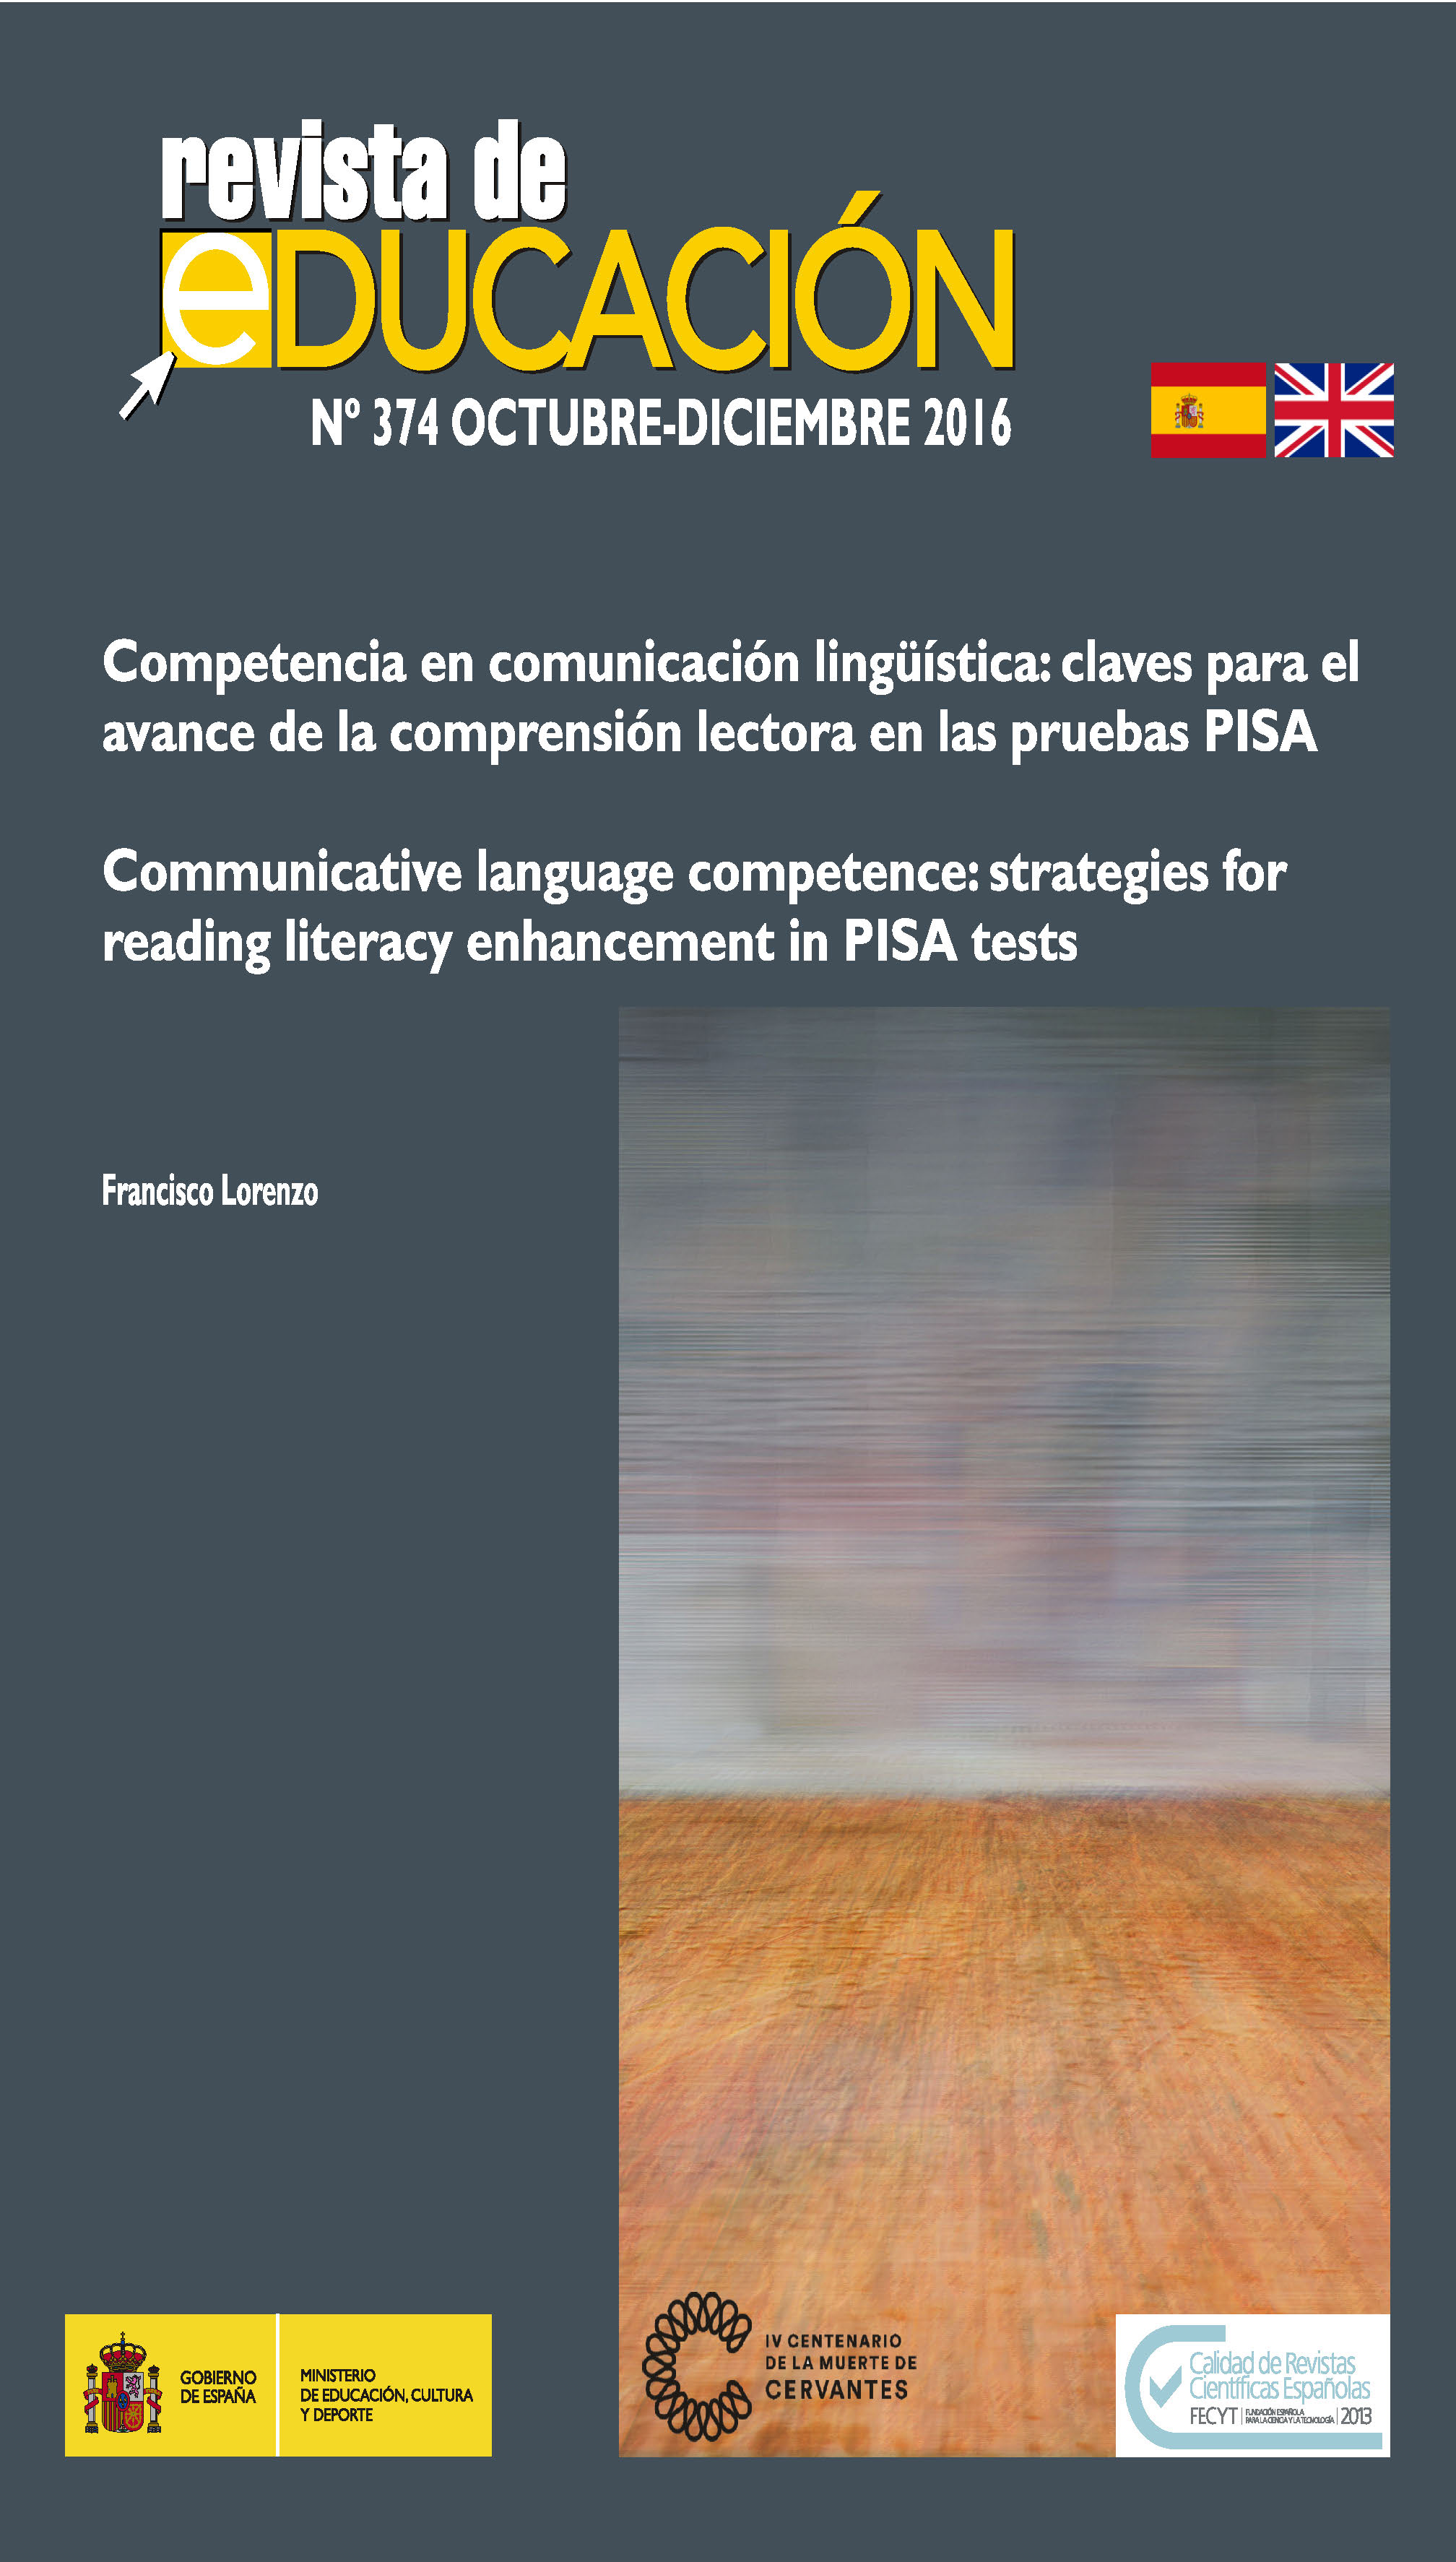 competencia-en-comunicacion-lingistica-claves-para-el-avance-de-la-comprension-lectora-en-las-pruebas-pisa--communicative-language-competence-strategies-for-reading-literacy-advance-in-pisa-scores